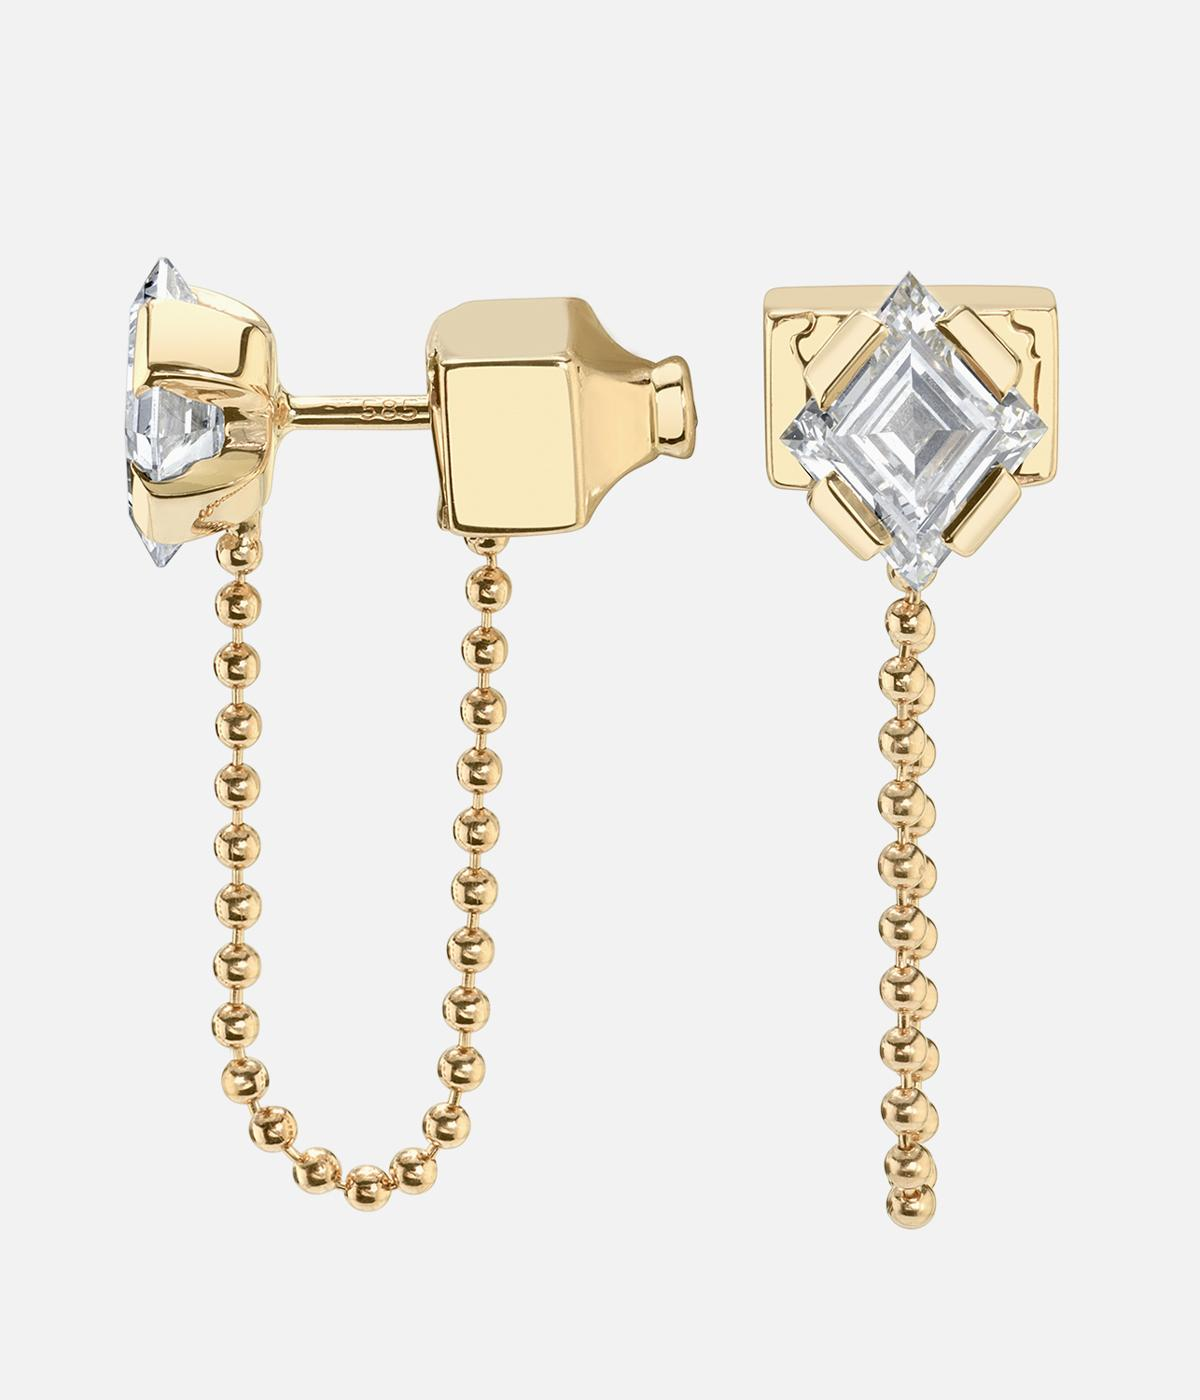 Vrai gold and diamond earrings with small dangling gold chain